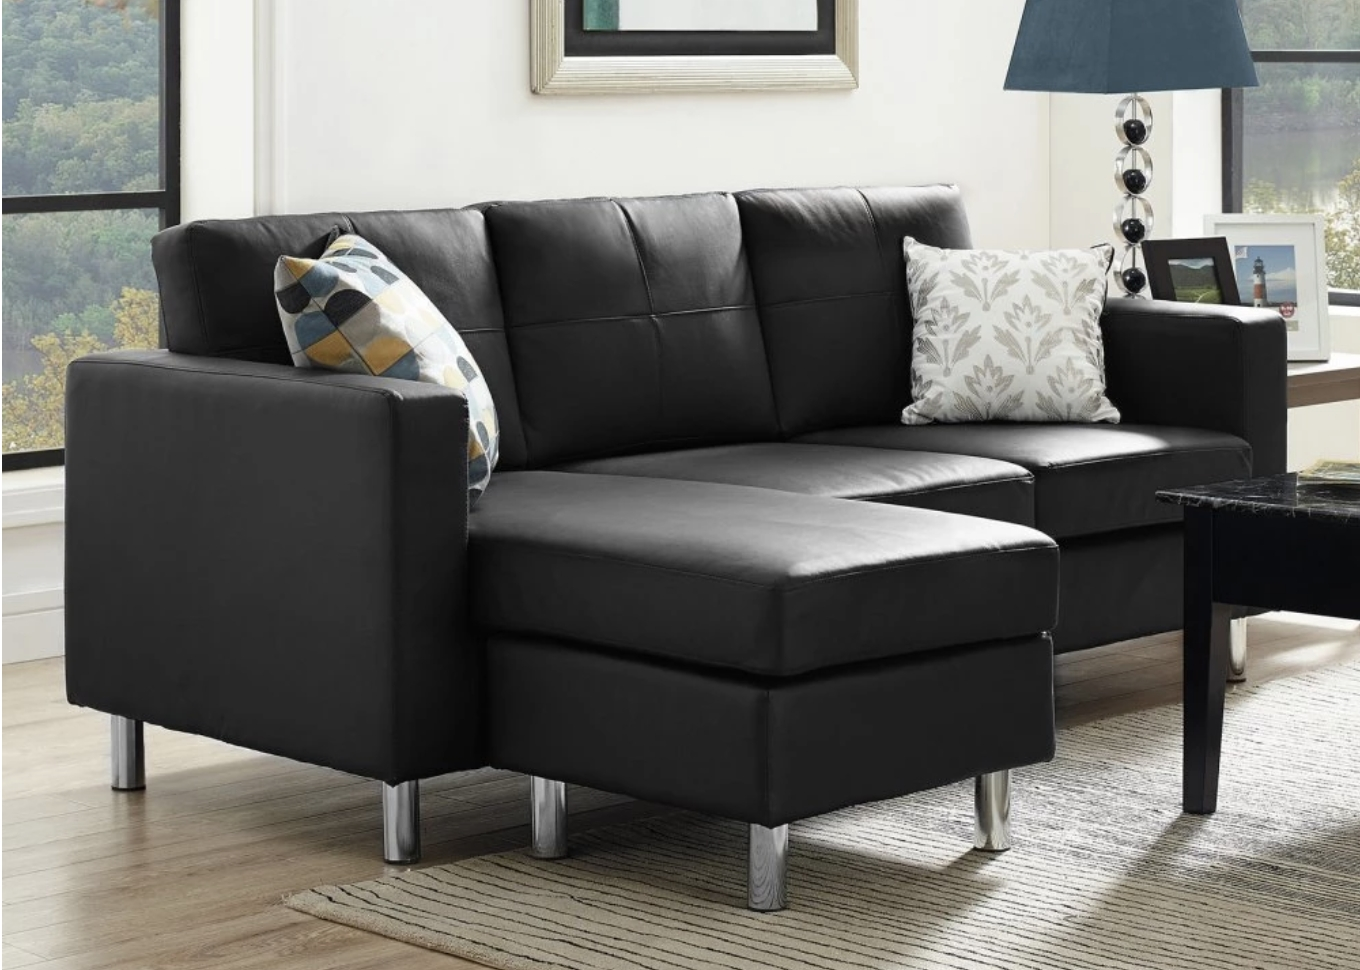 75 Modern Sectional Sofas For Small Spaces (2018) pertaining to Sectional Sofas For Small Places (Image 2 of 10)